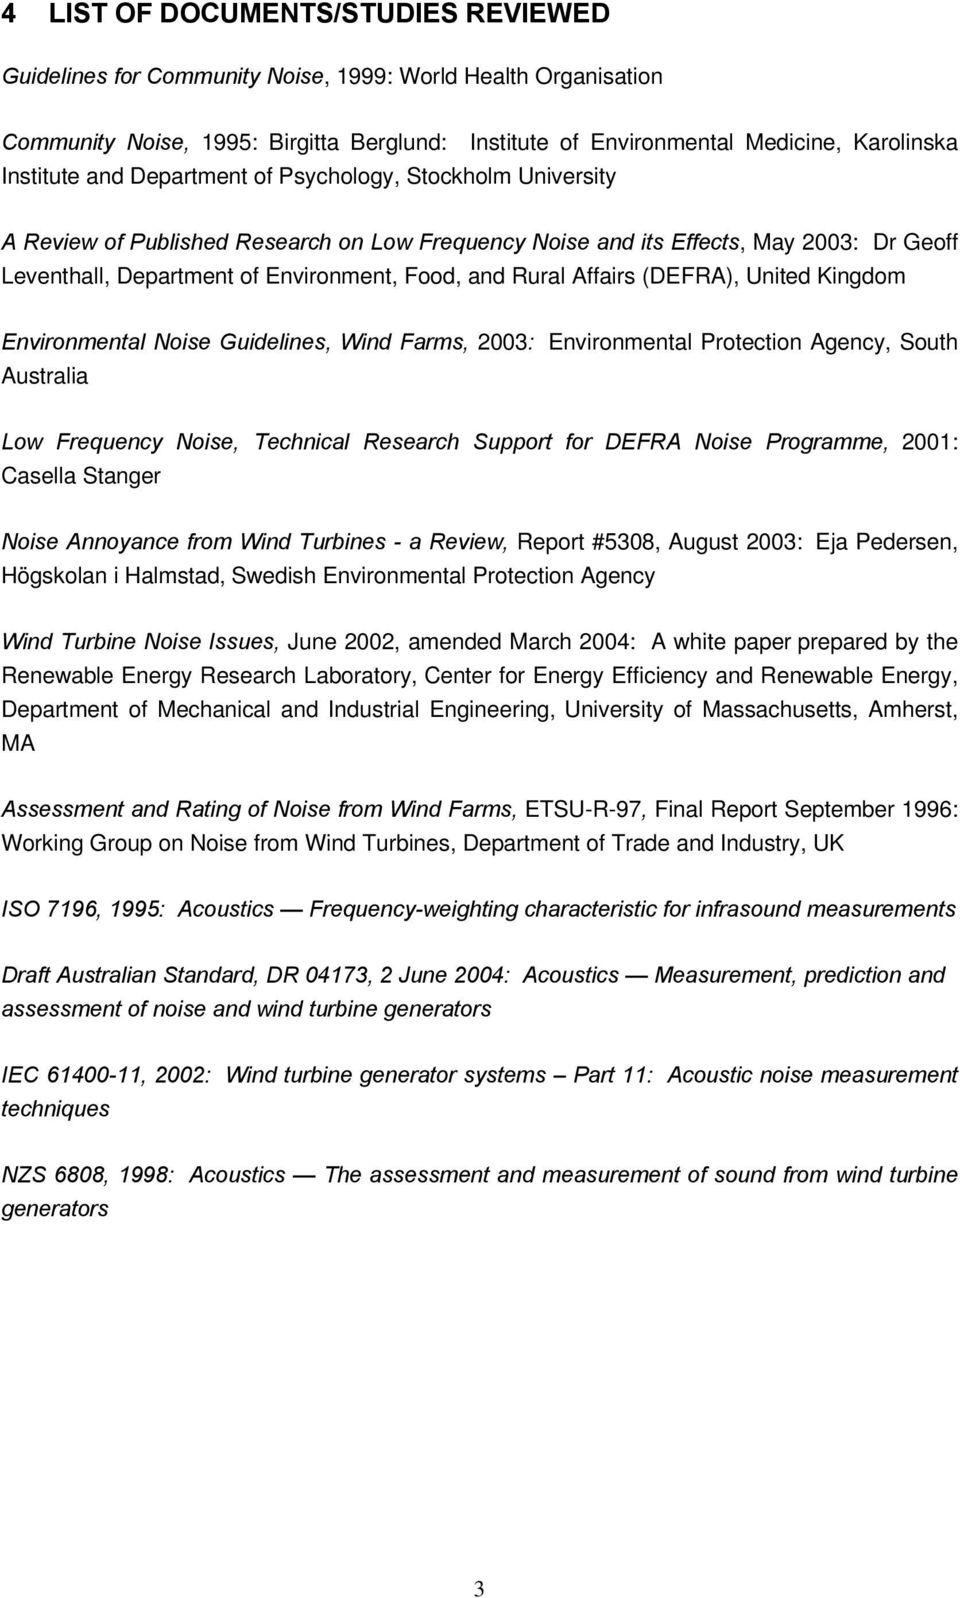 Rural Affairs (DEFRA), United Kingdom Environmental Noise Guidelines, Wind Farms, 2003: Environmental Protection Agency, South Australia Low Frequency Noise, Technical Research Support for DEFRA